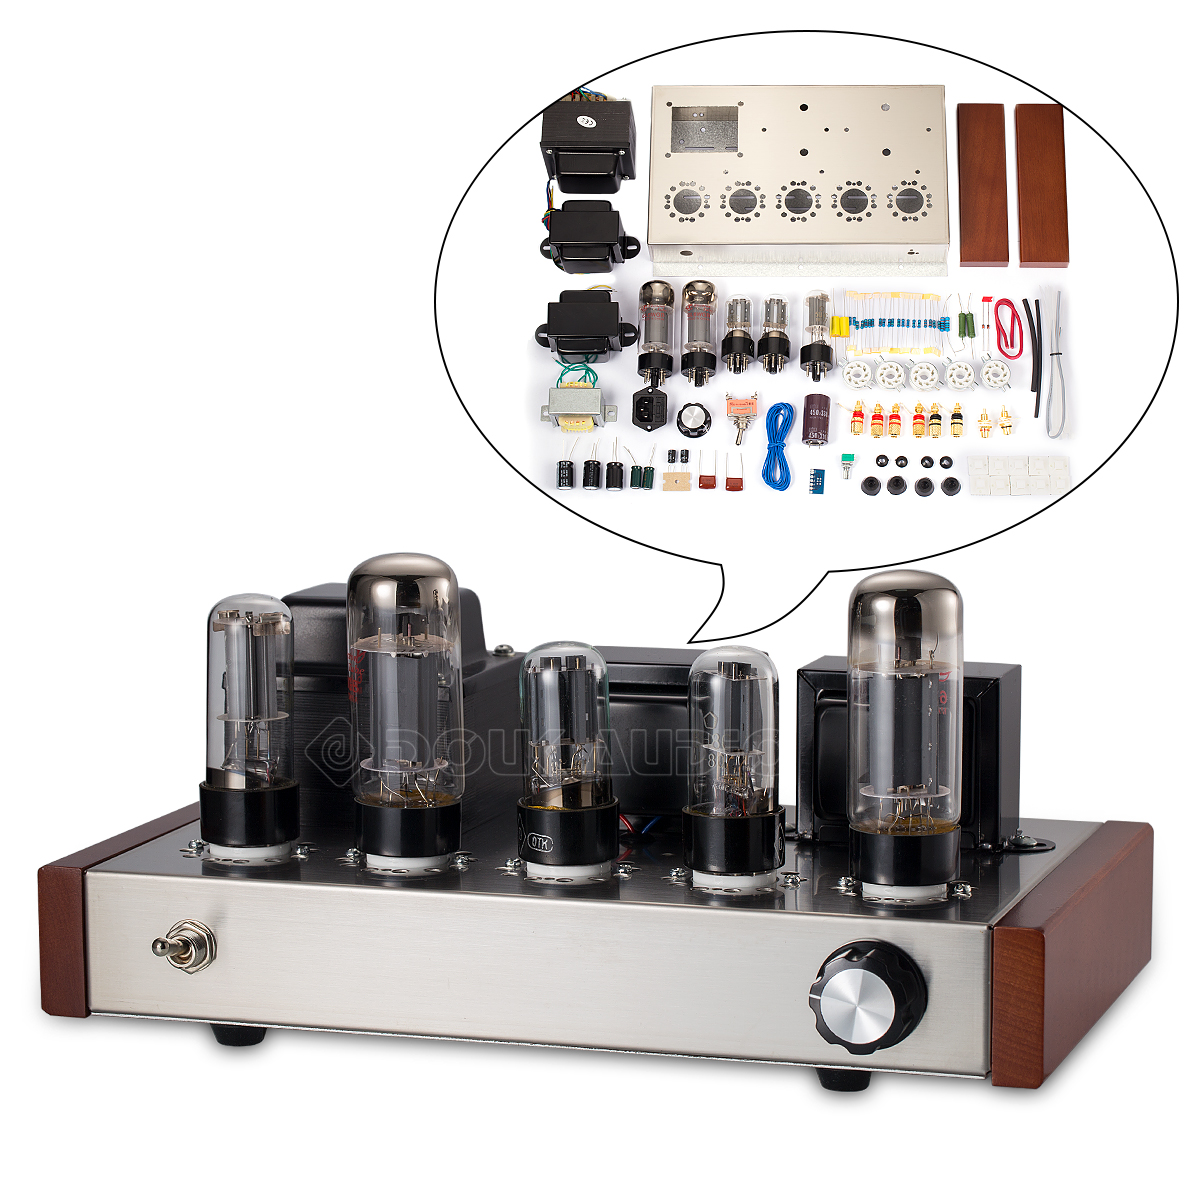 Details about 6H8C+6L6 Vacuum Tube Power Amplifier HiFi Single-Ended Class  A Audio Amp DIY Kit